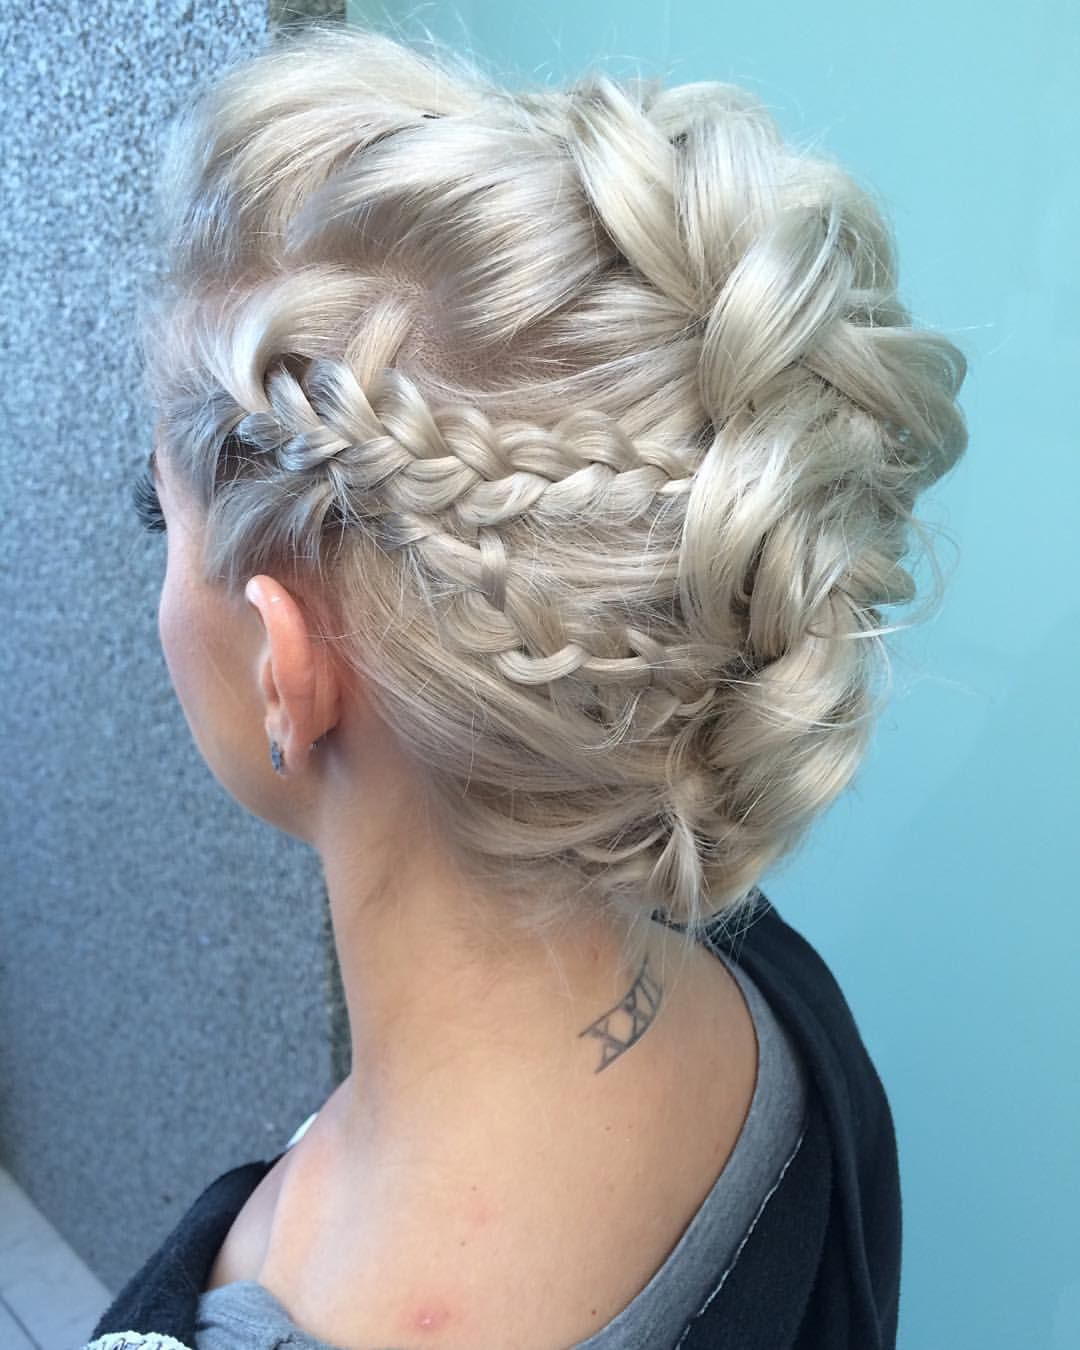 Pin by erin heberlein on hair dos pinterest th instagram and